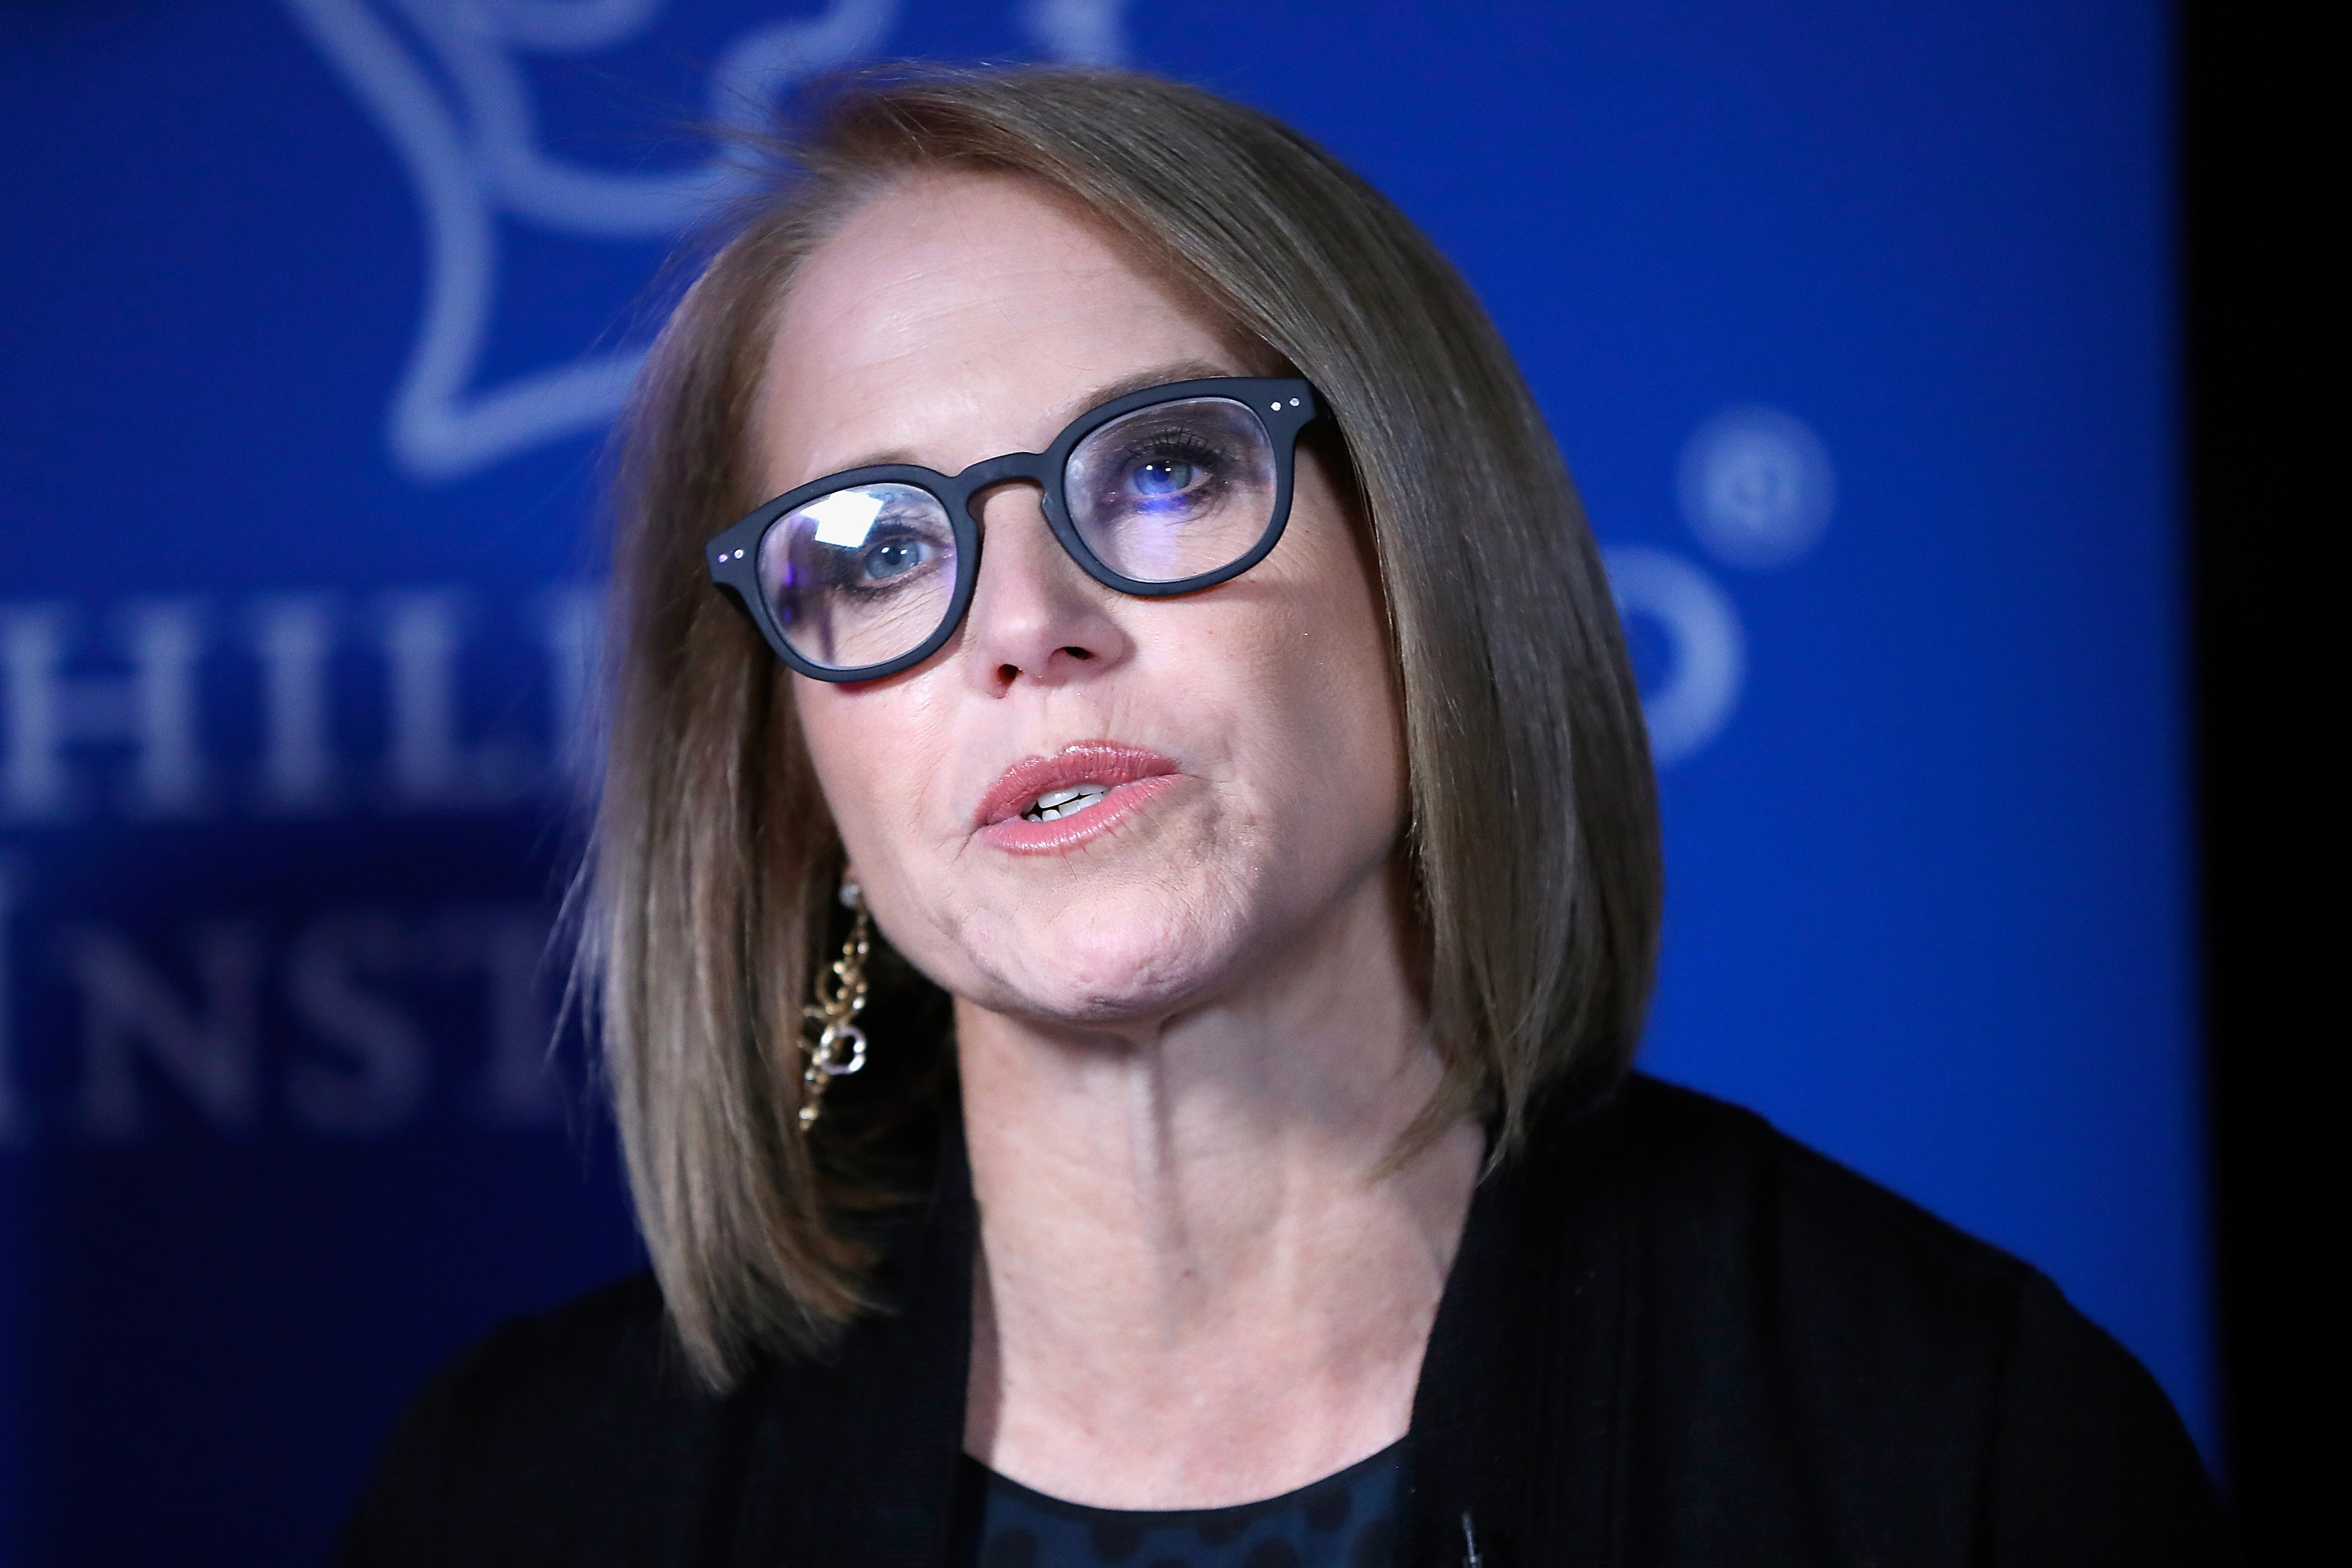 Katie Couric faced 'gross' sexism during career